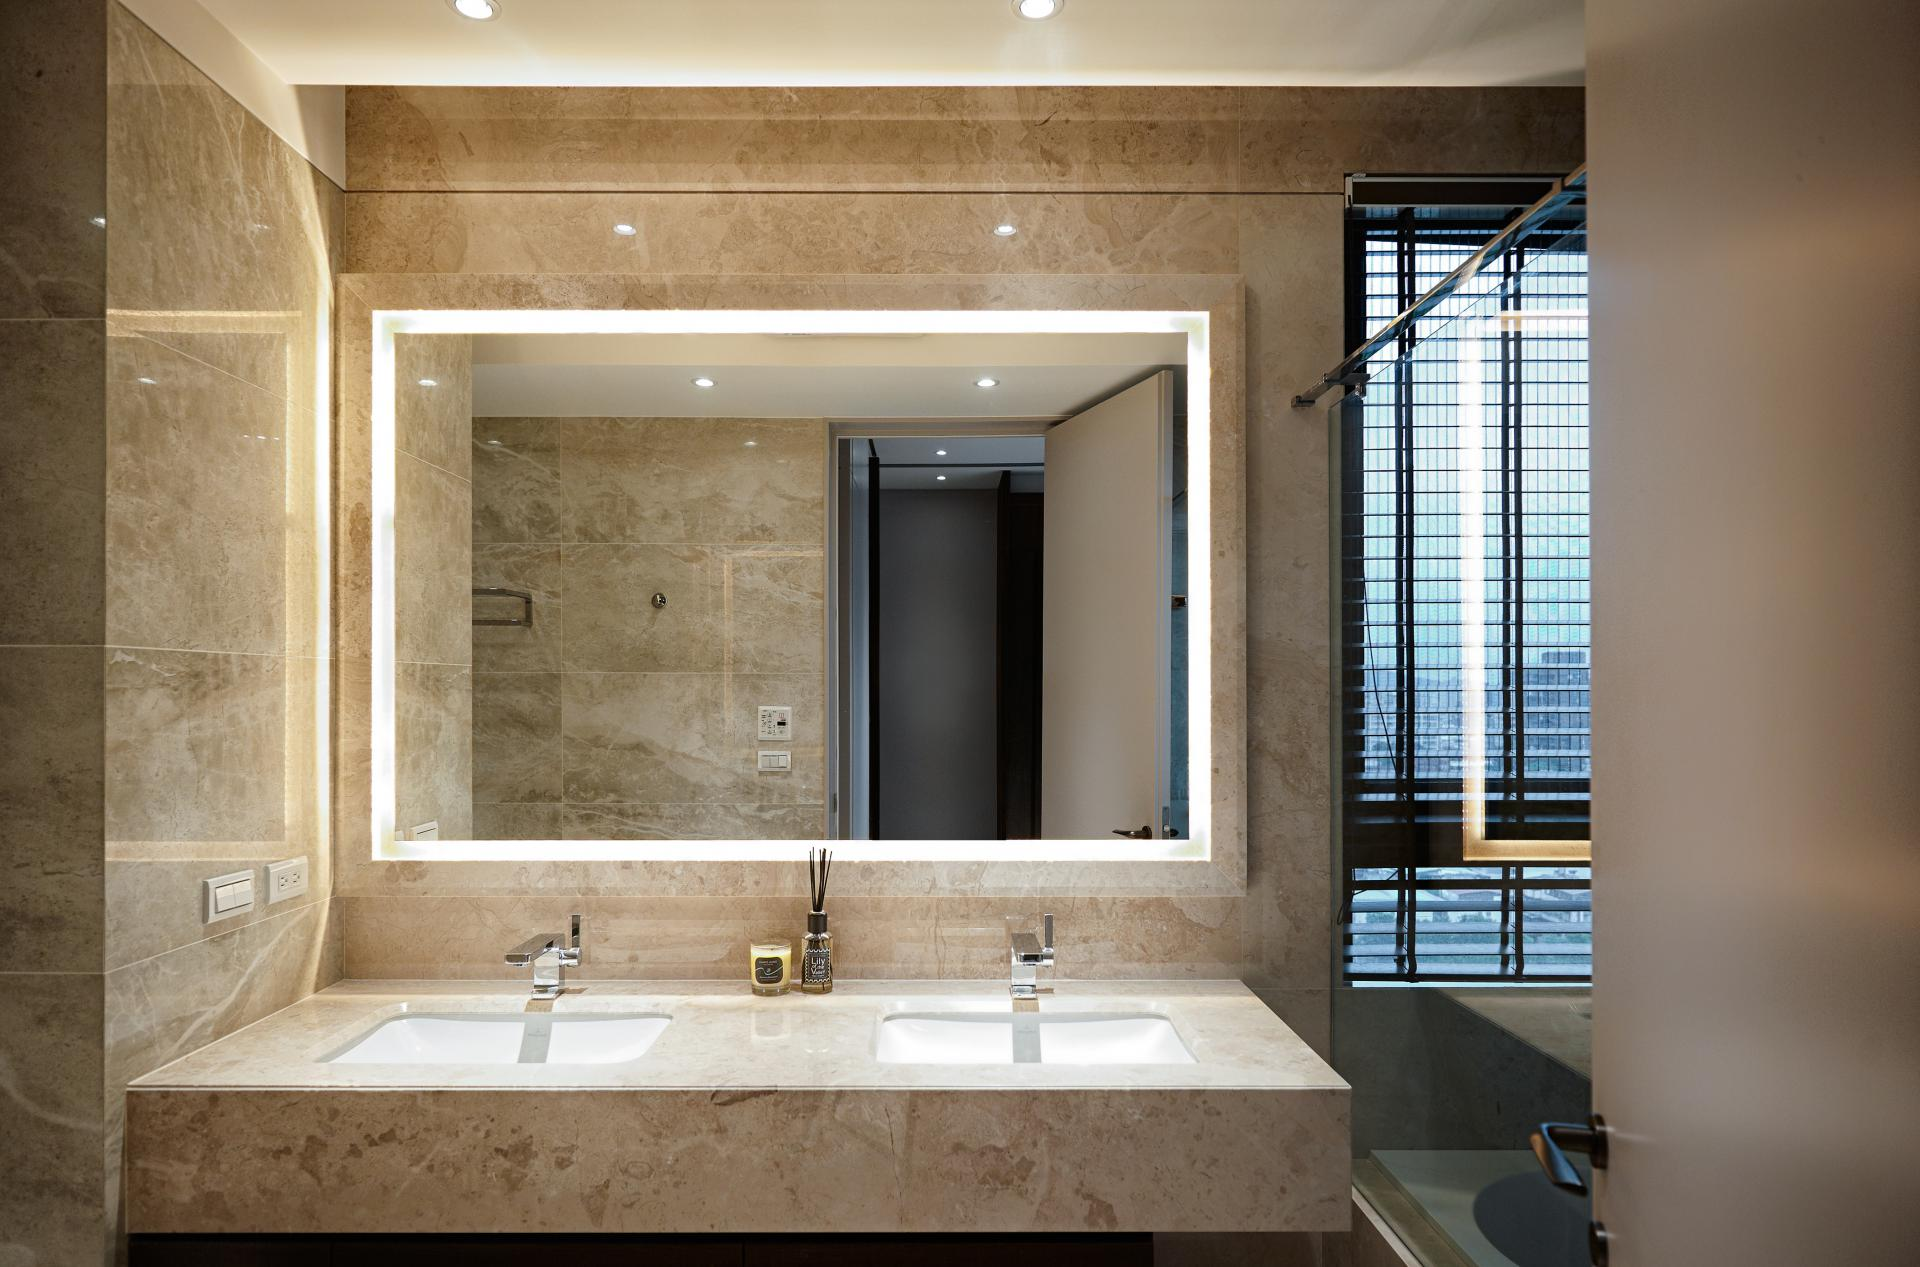 Two taiwan homes take beautiful inspiration from nature for Create a bathroom design online